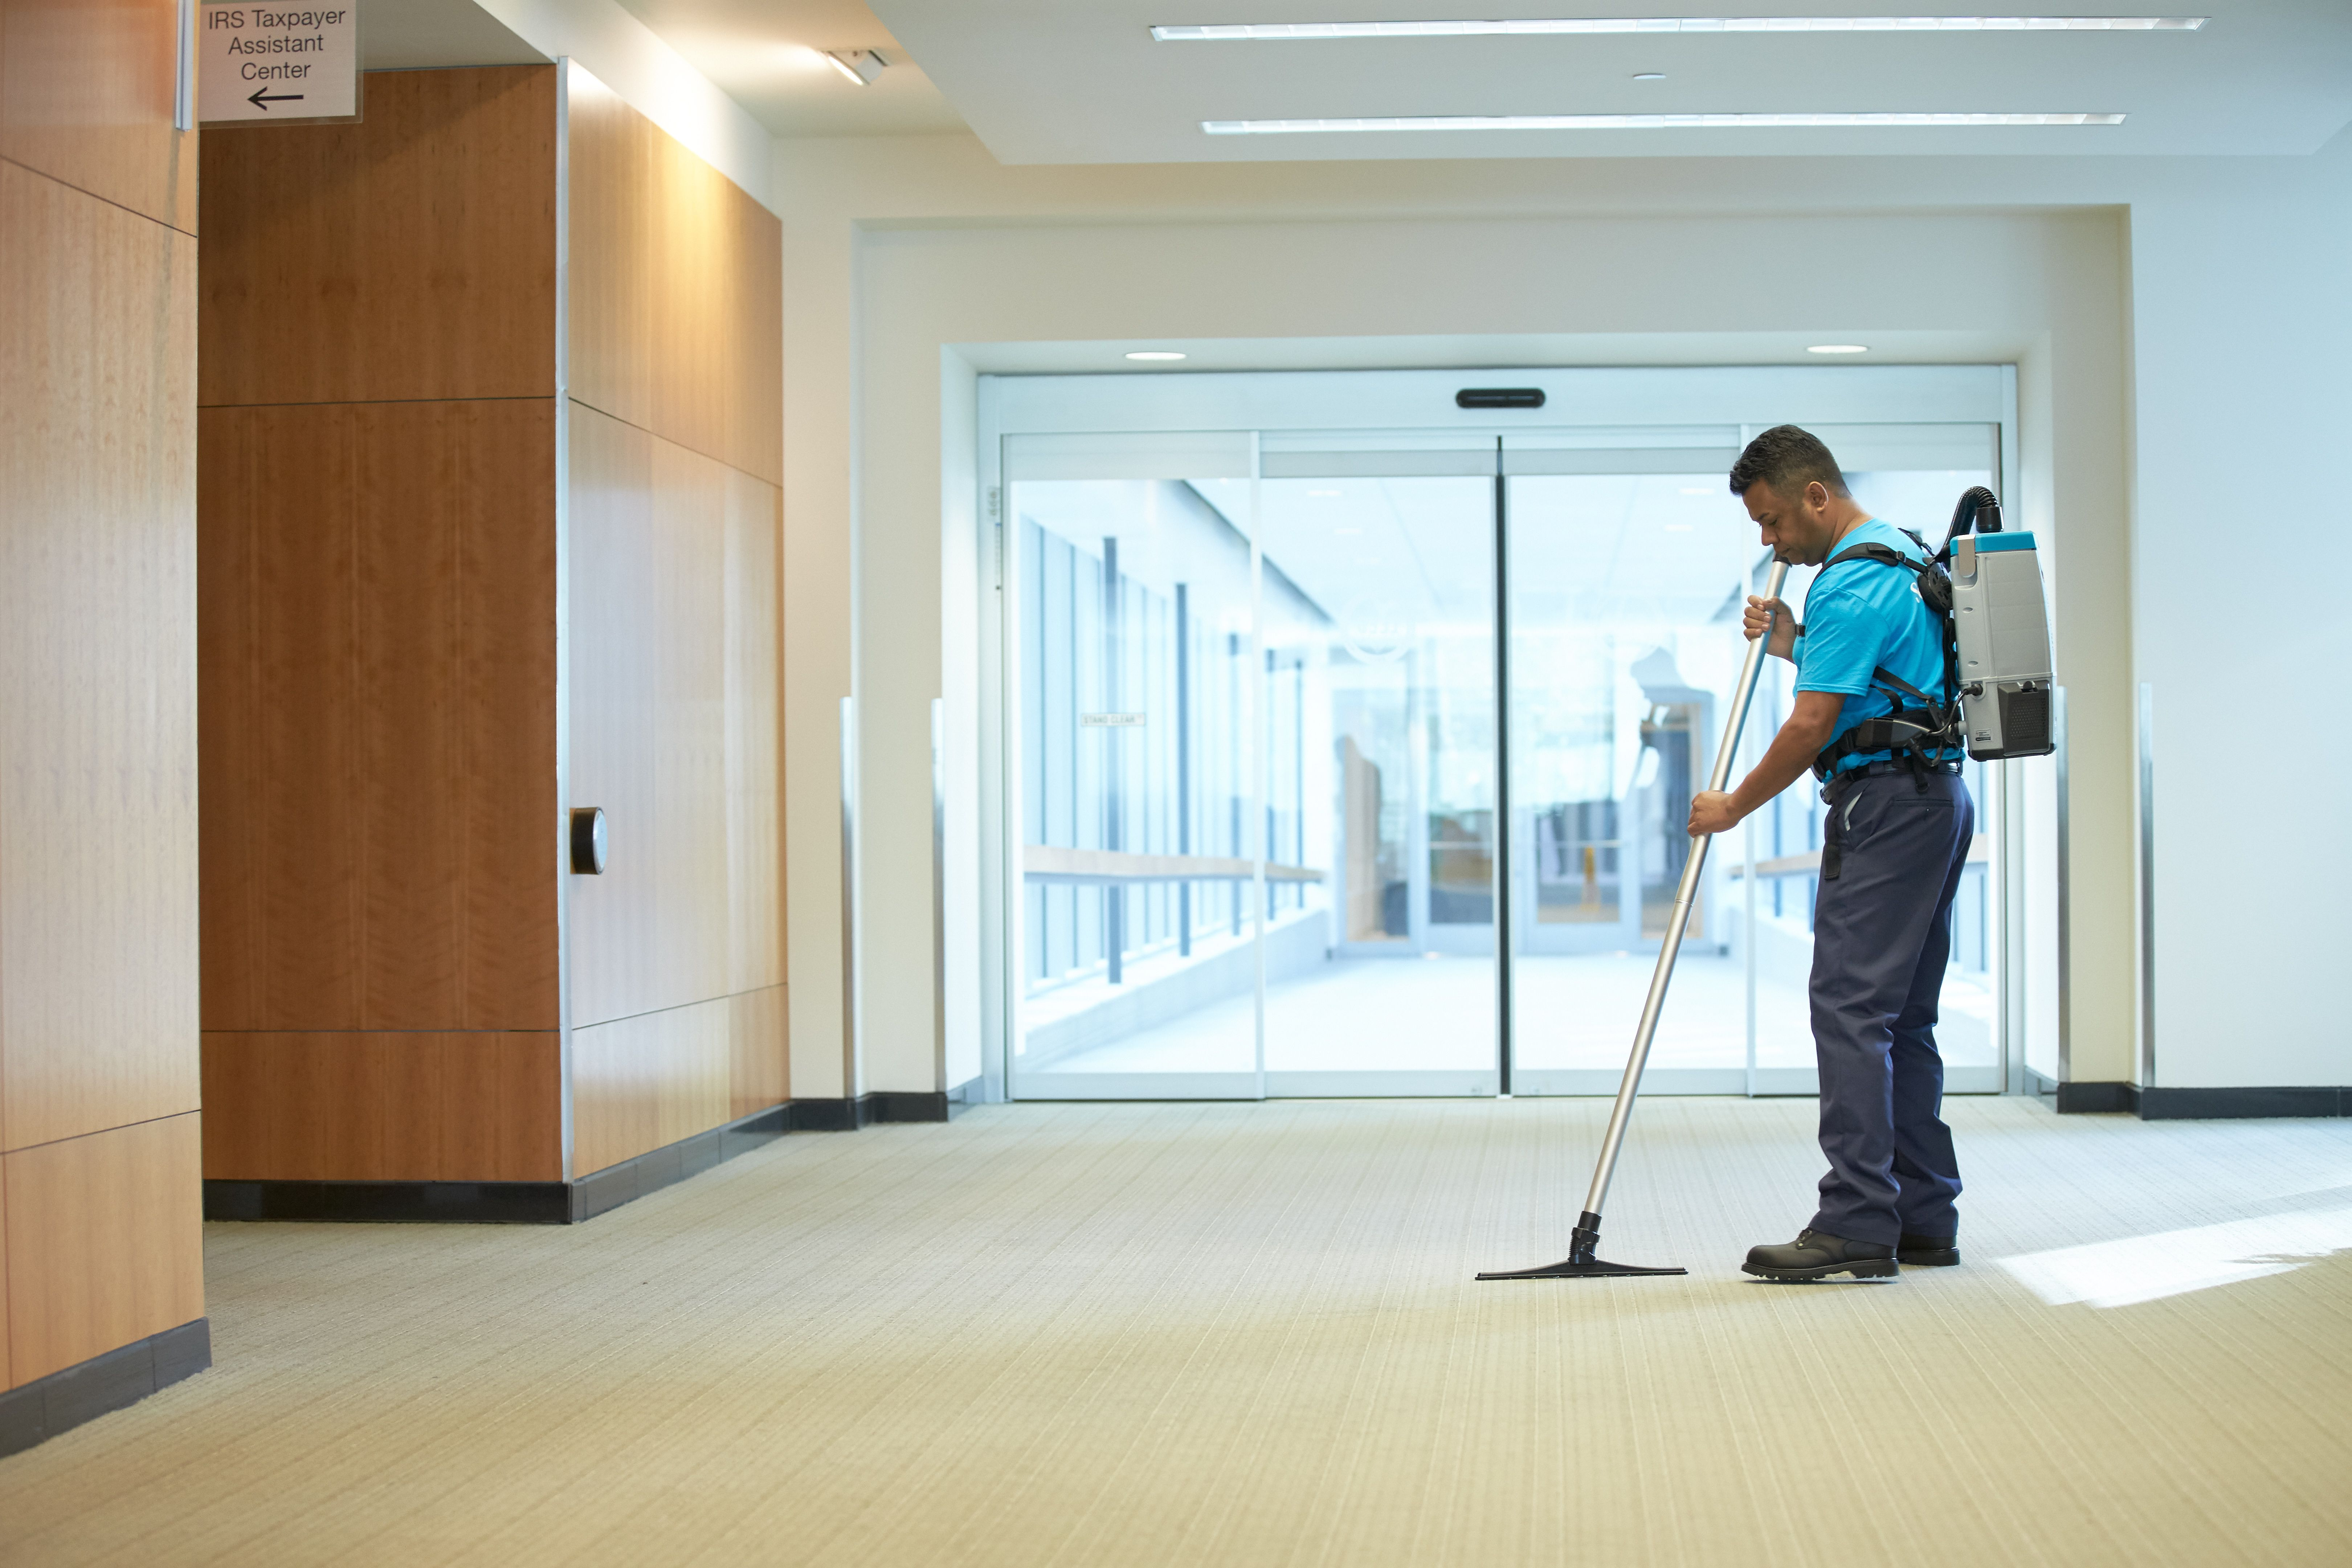 Fire Damage And Water Damage Restoration In Conyers Ga Commercial Cleaning Services Damage Restoration Commercial Carpet Cleaning